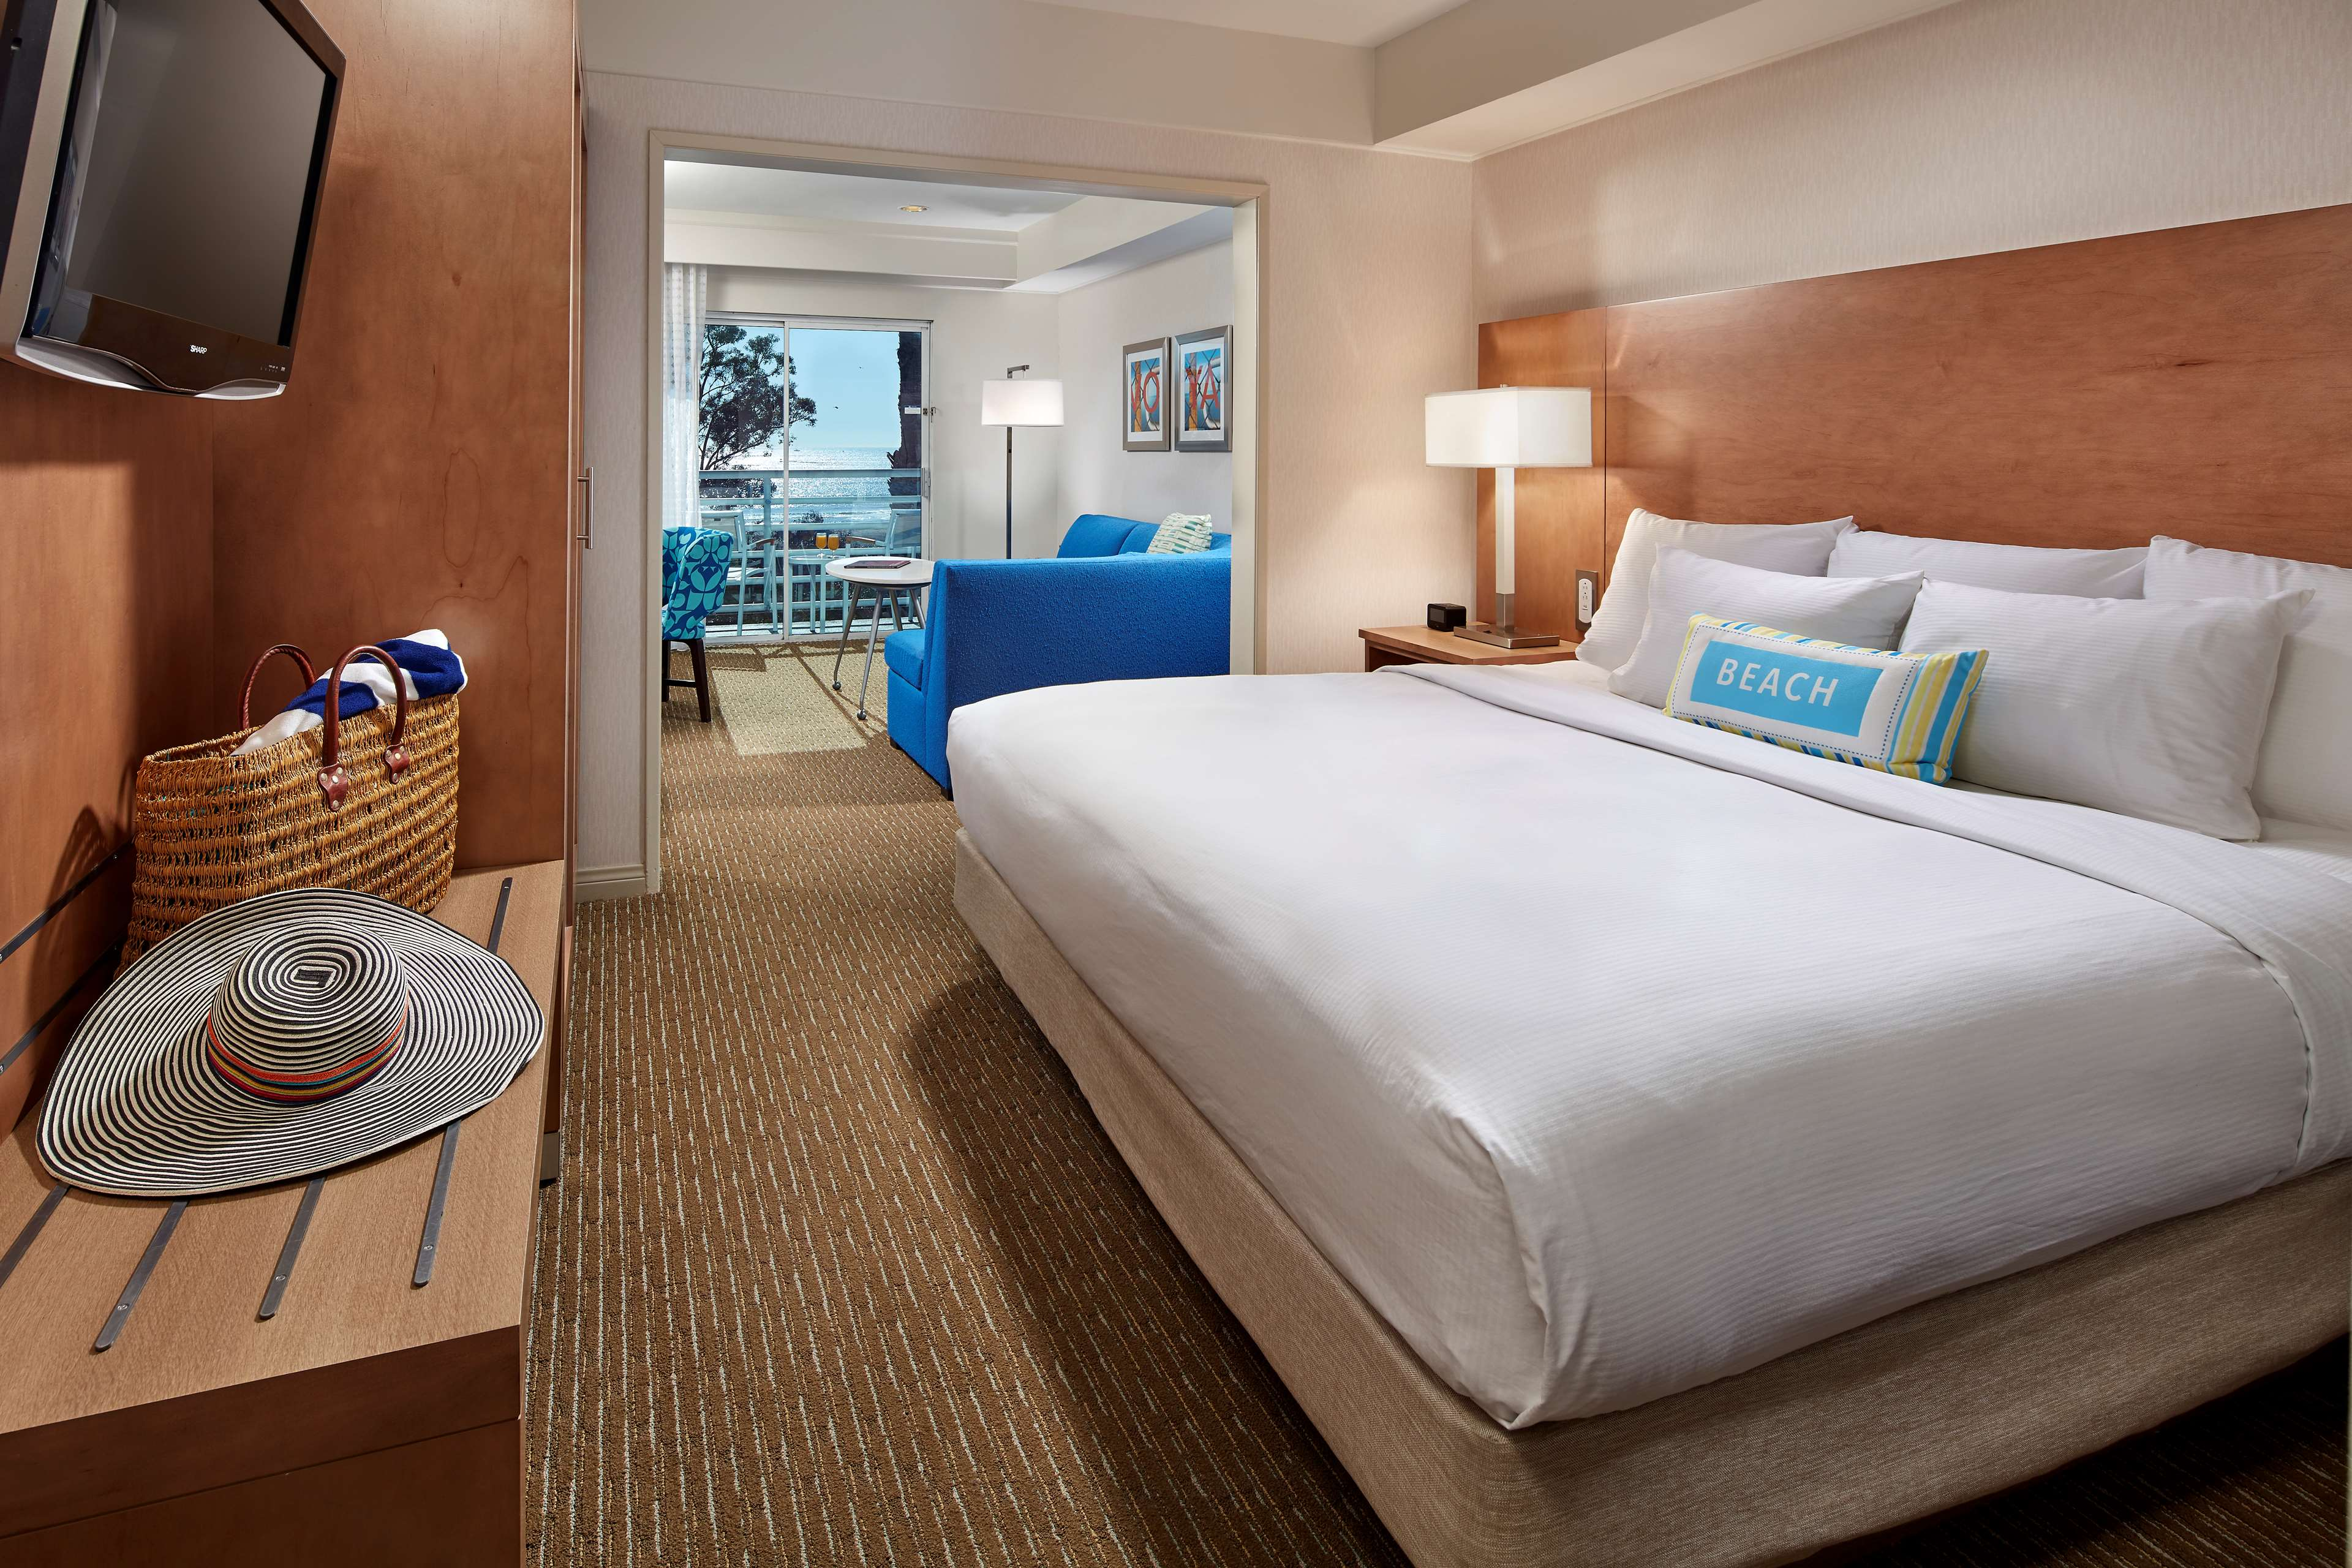 DoubleTree Suites by Hilton Hotel Doheny Beach - Dana Point image 17